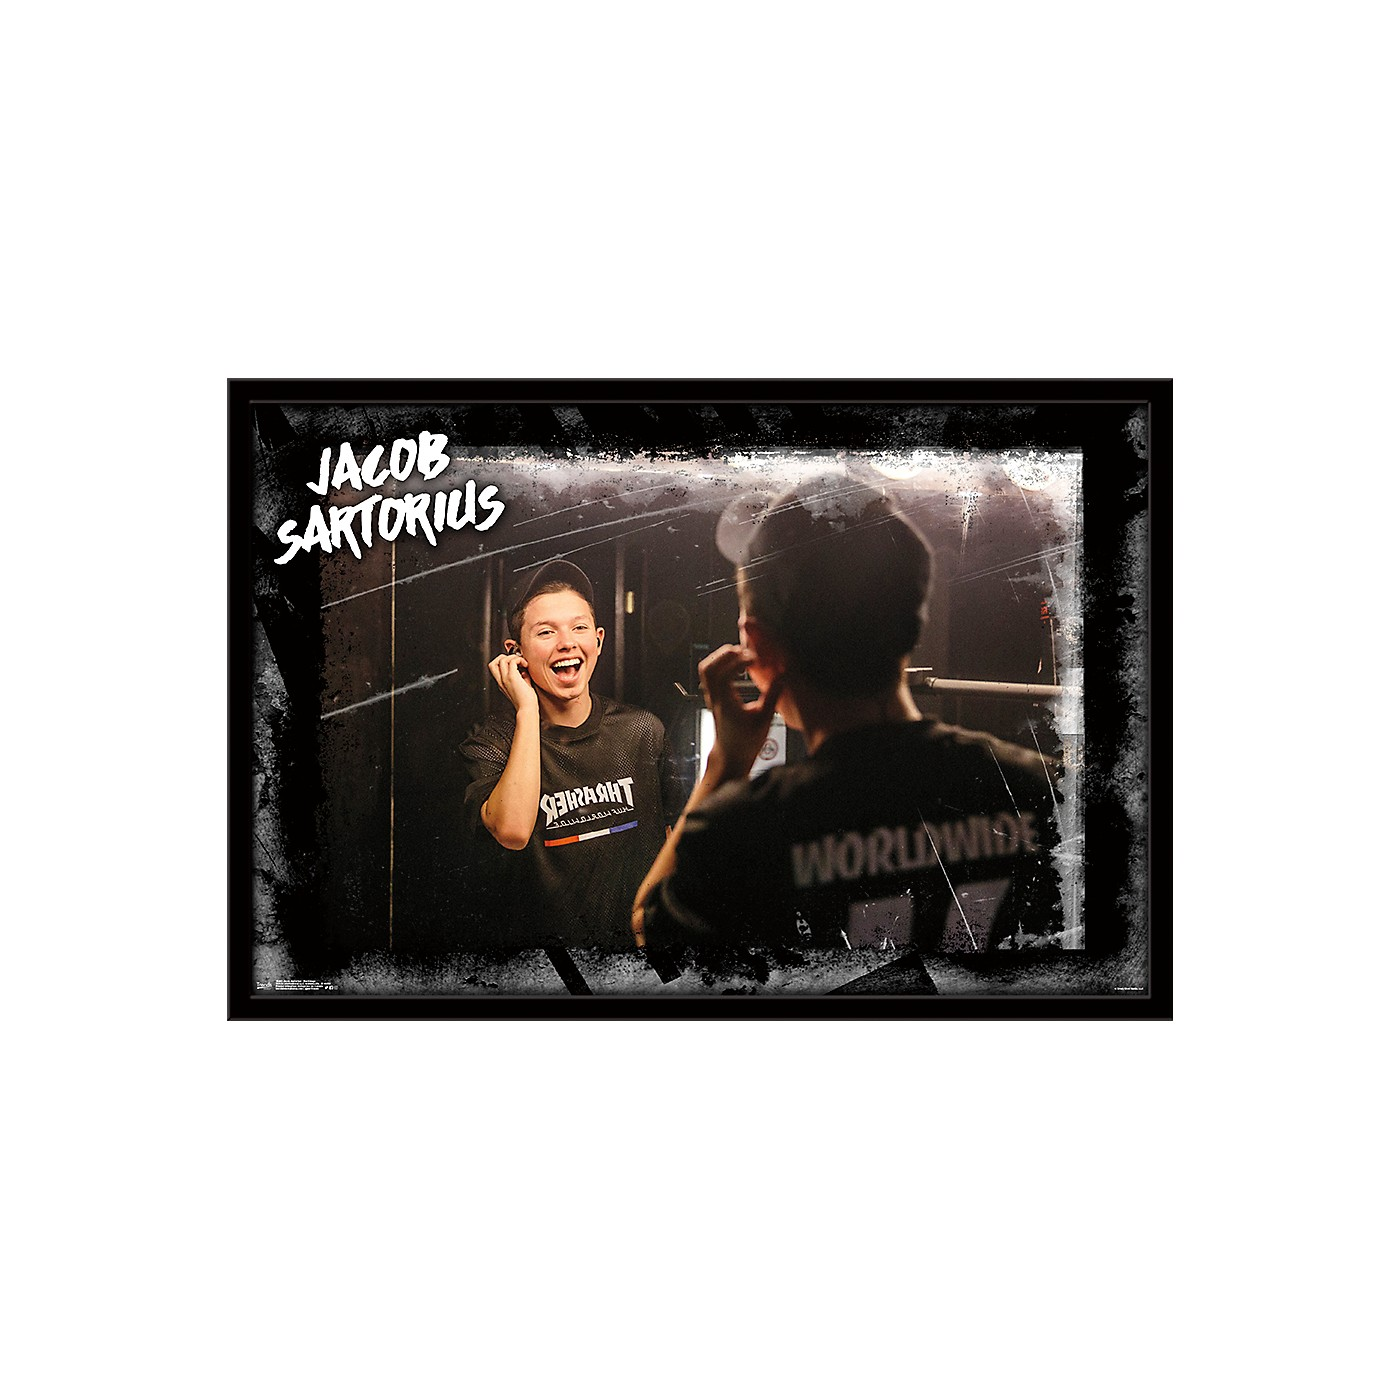 Trends International Jacob Sartorious - Backstage Poster thumbnail